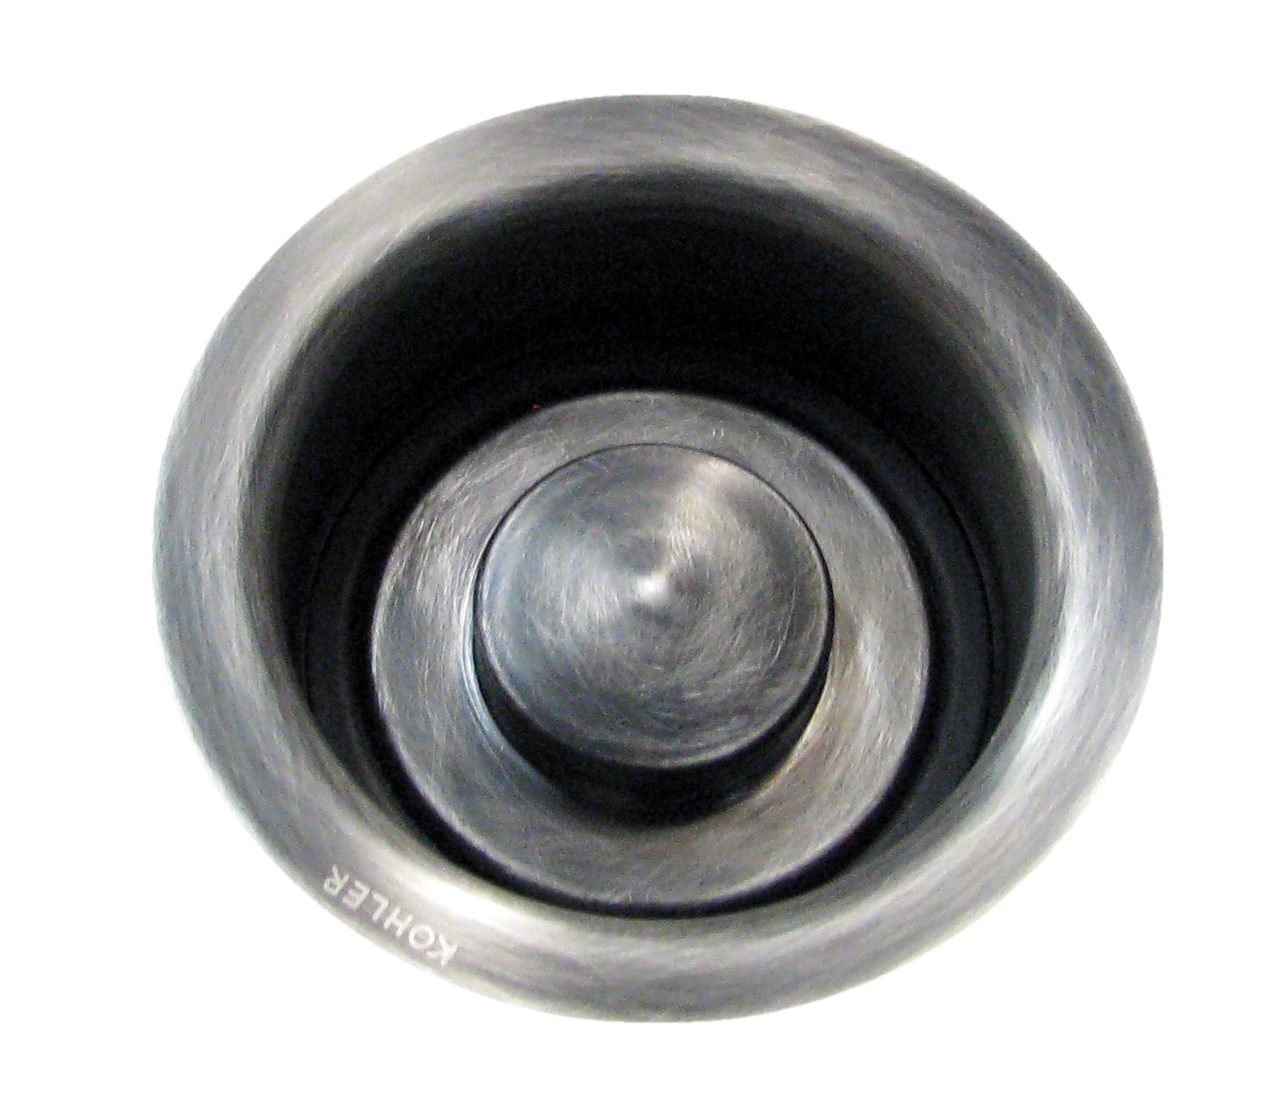 disposal fitting and matching plug, Medium Nickel Silver